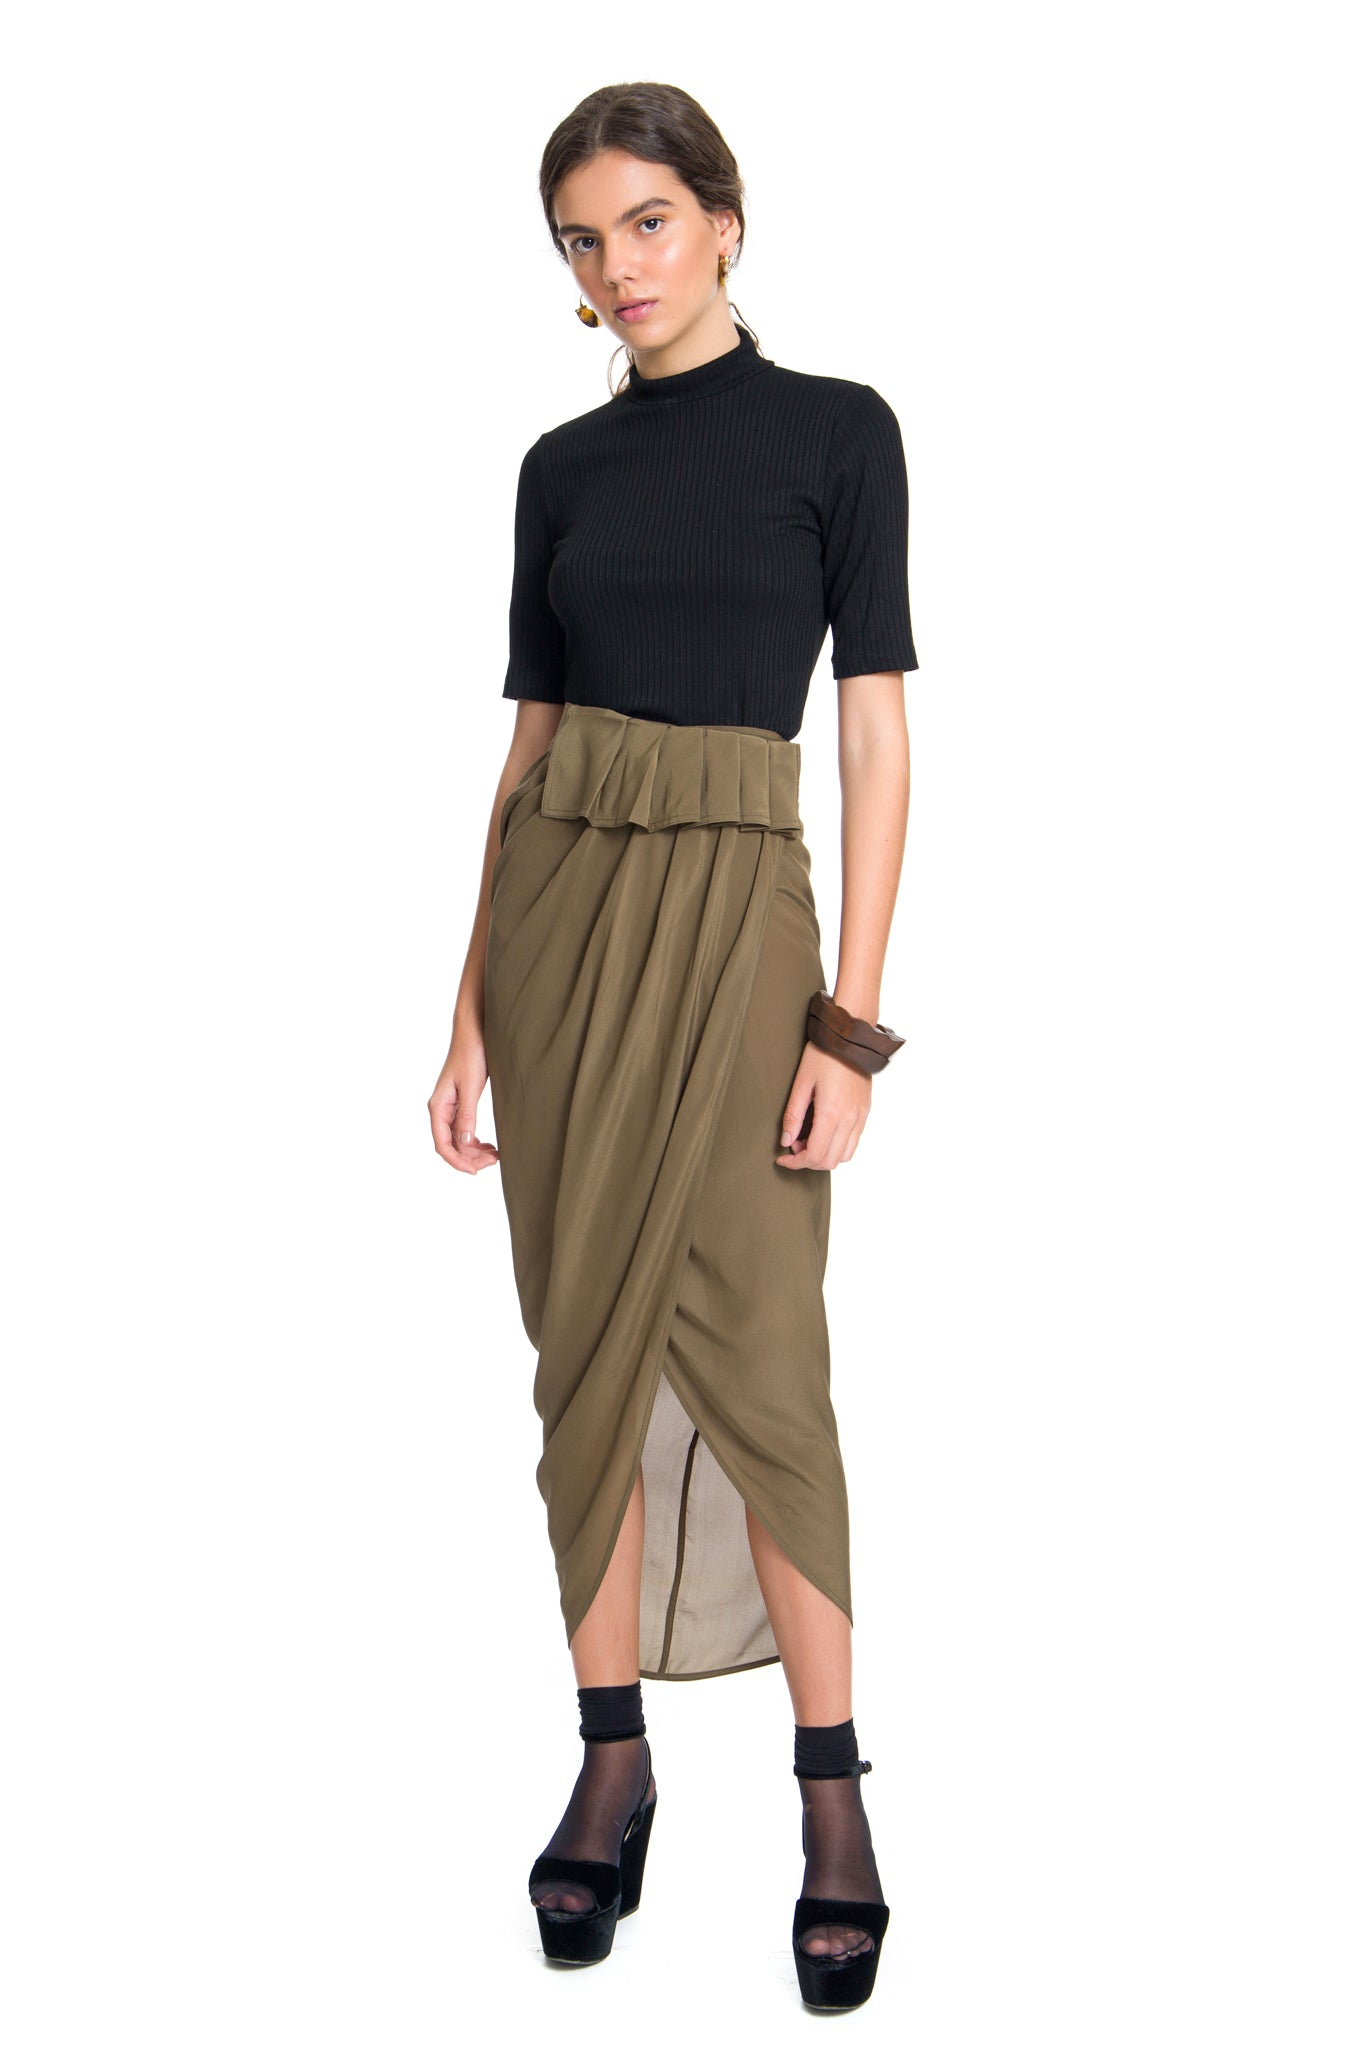 ENVELOPE SKIRT